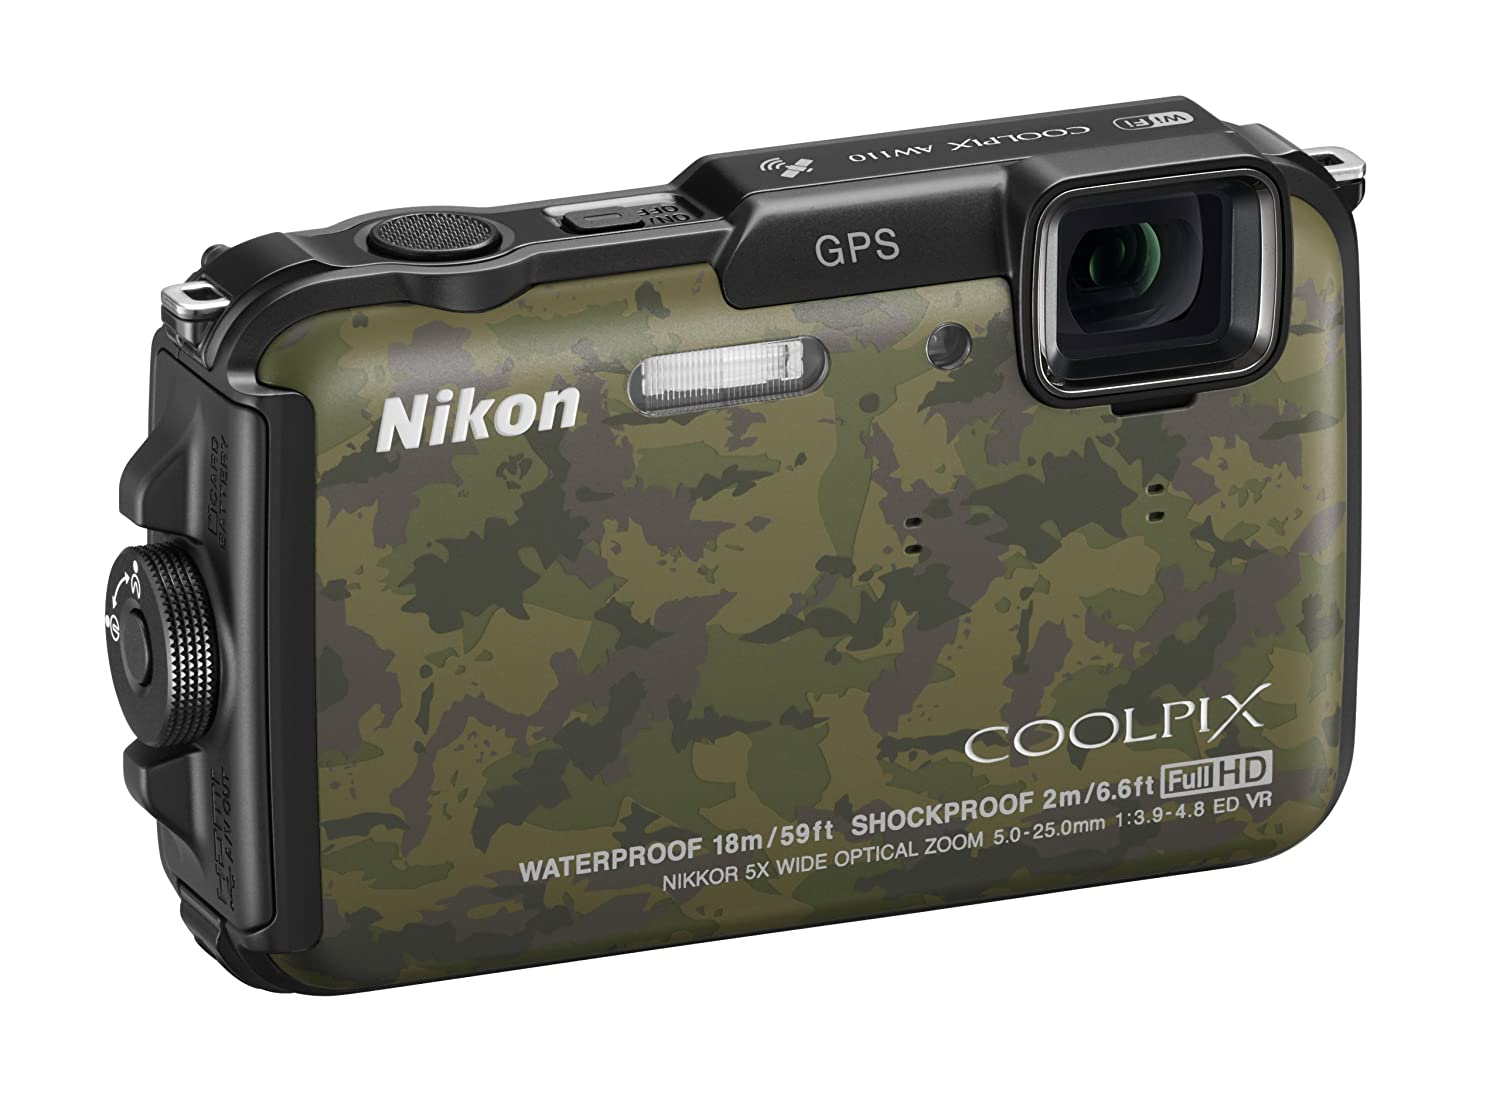 new nikon waterproof coolpix aw110